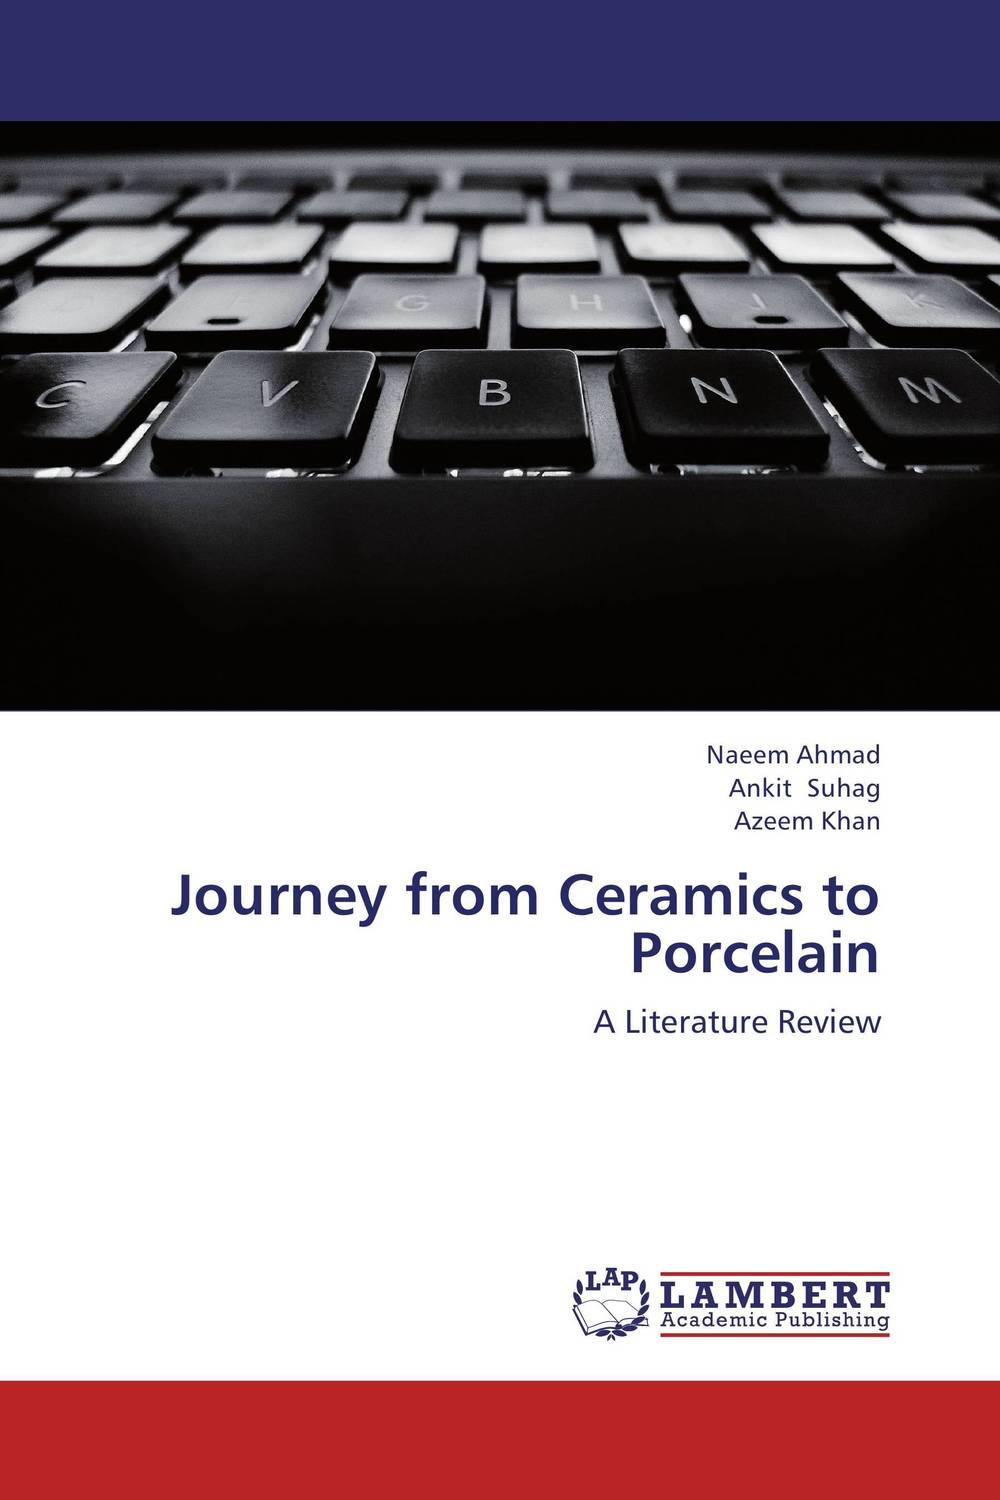 Journey from Ceramics to Porcelain verne j journey to the centre of the earth